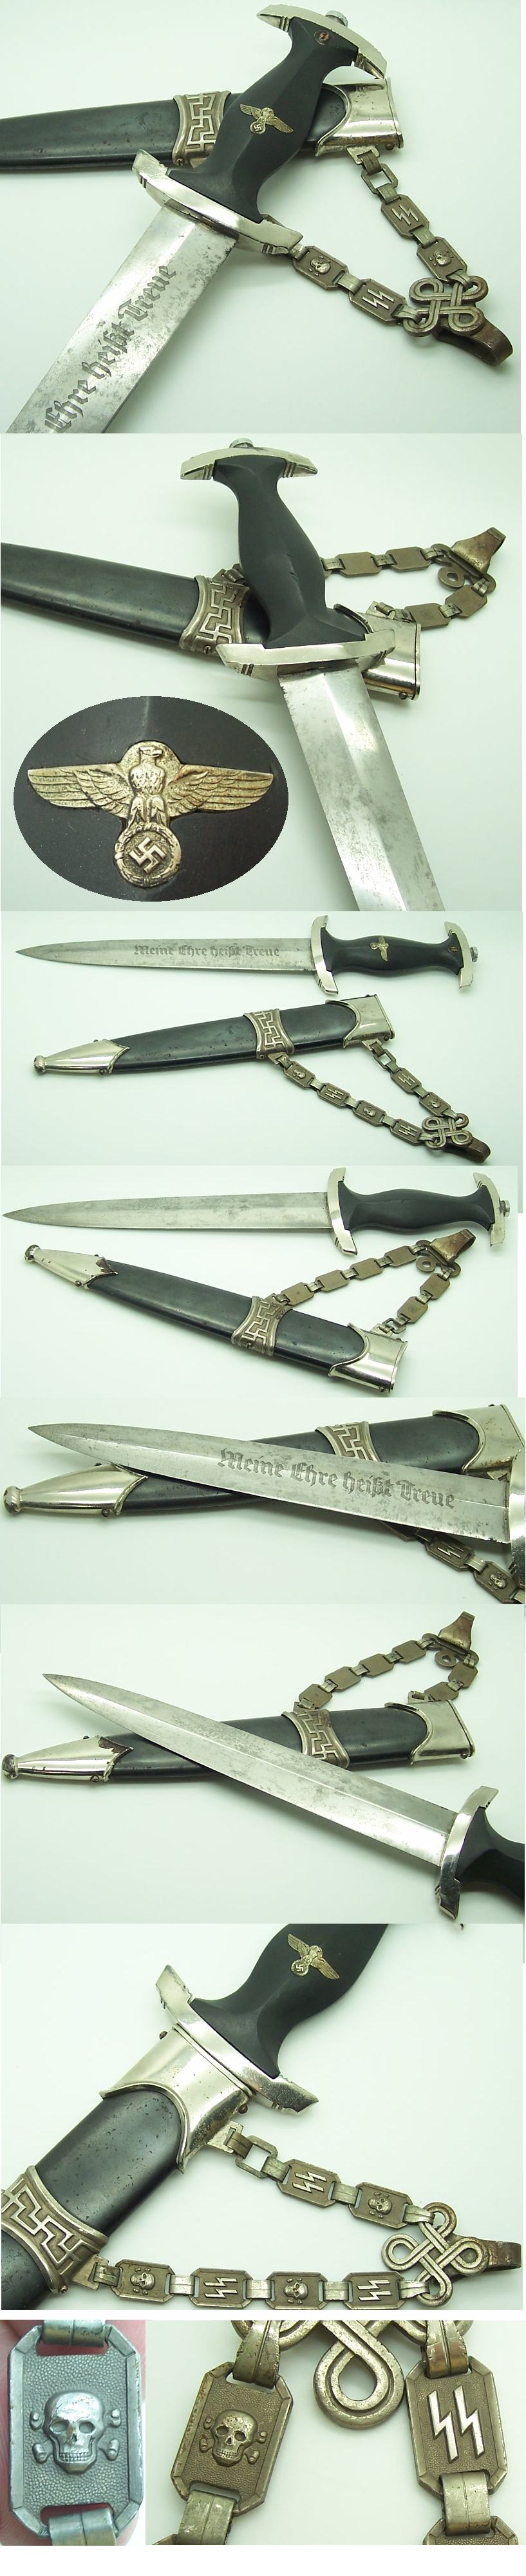 Officer's Chained Type II SS Dagger